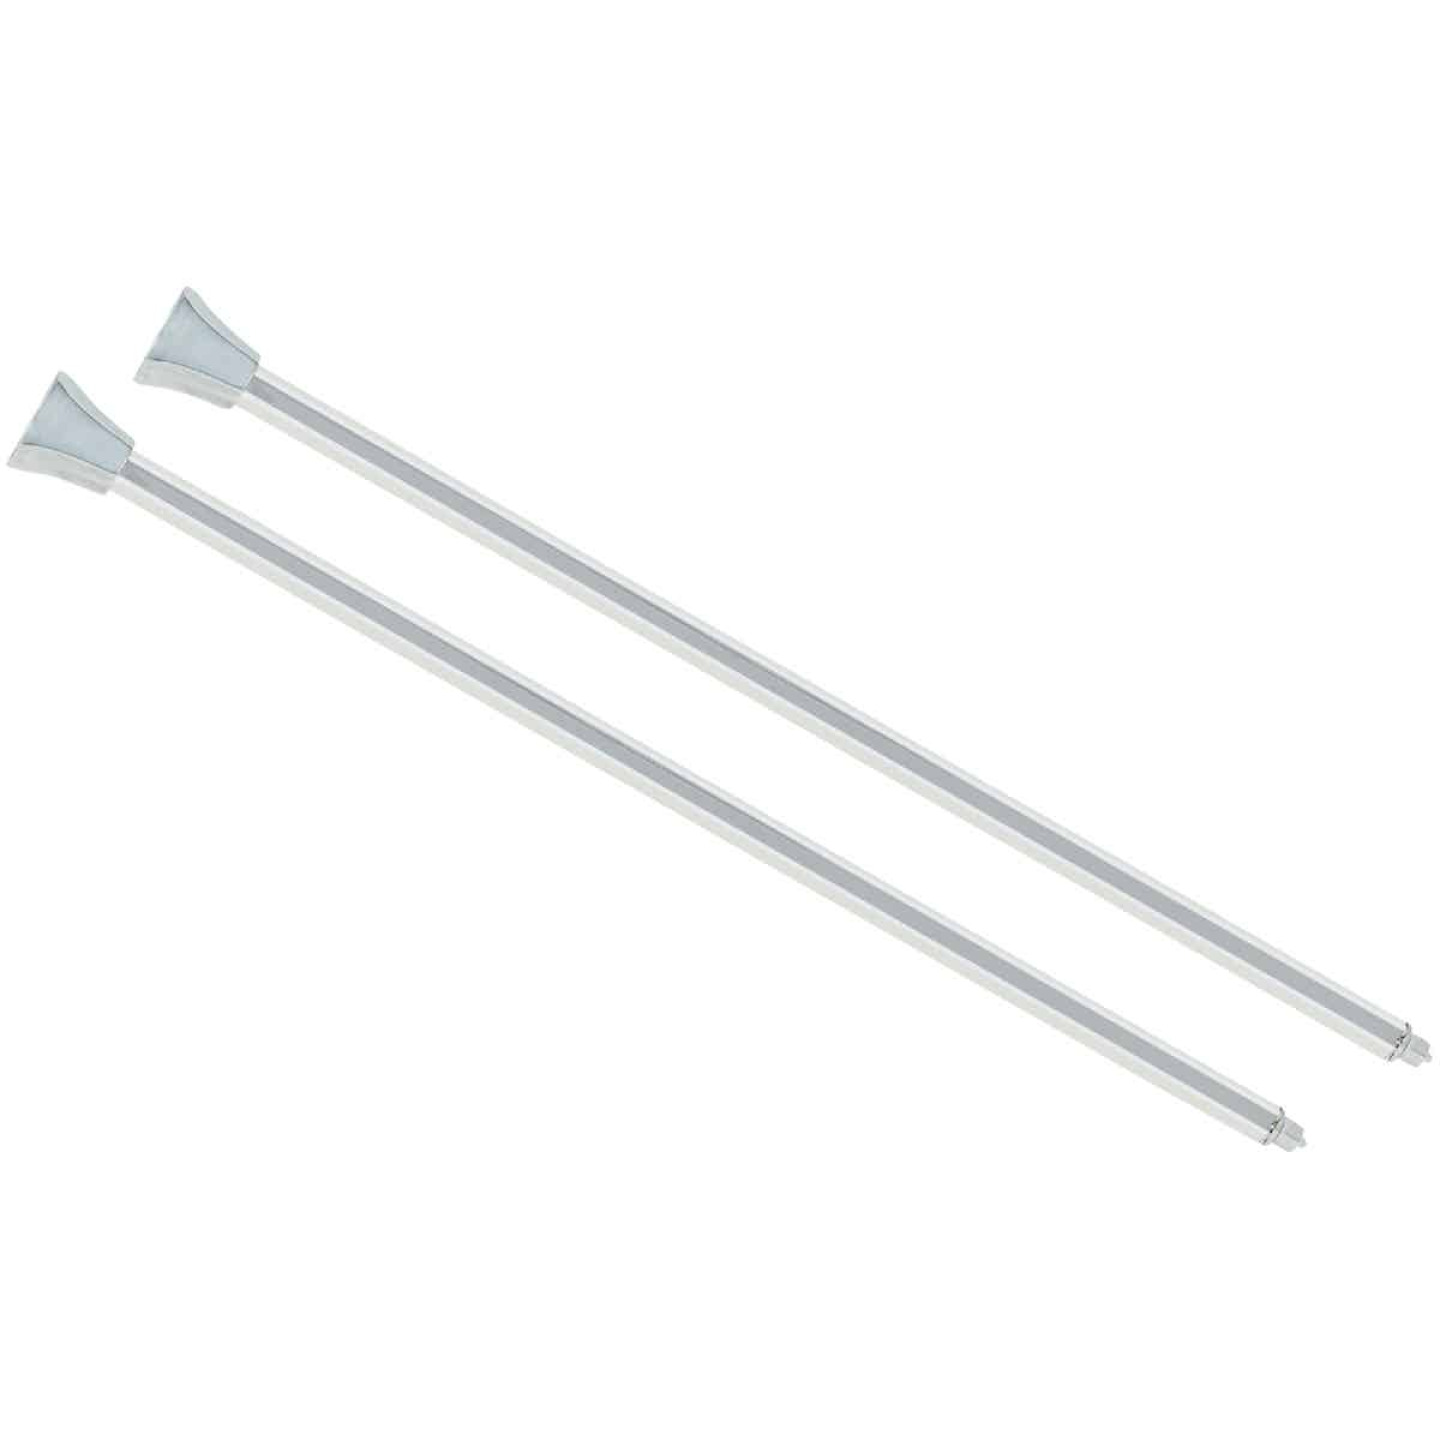 Do it Chrome Wall Hung Sink Legs (2-Pack) Image 1